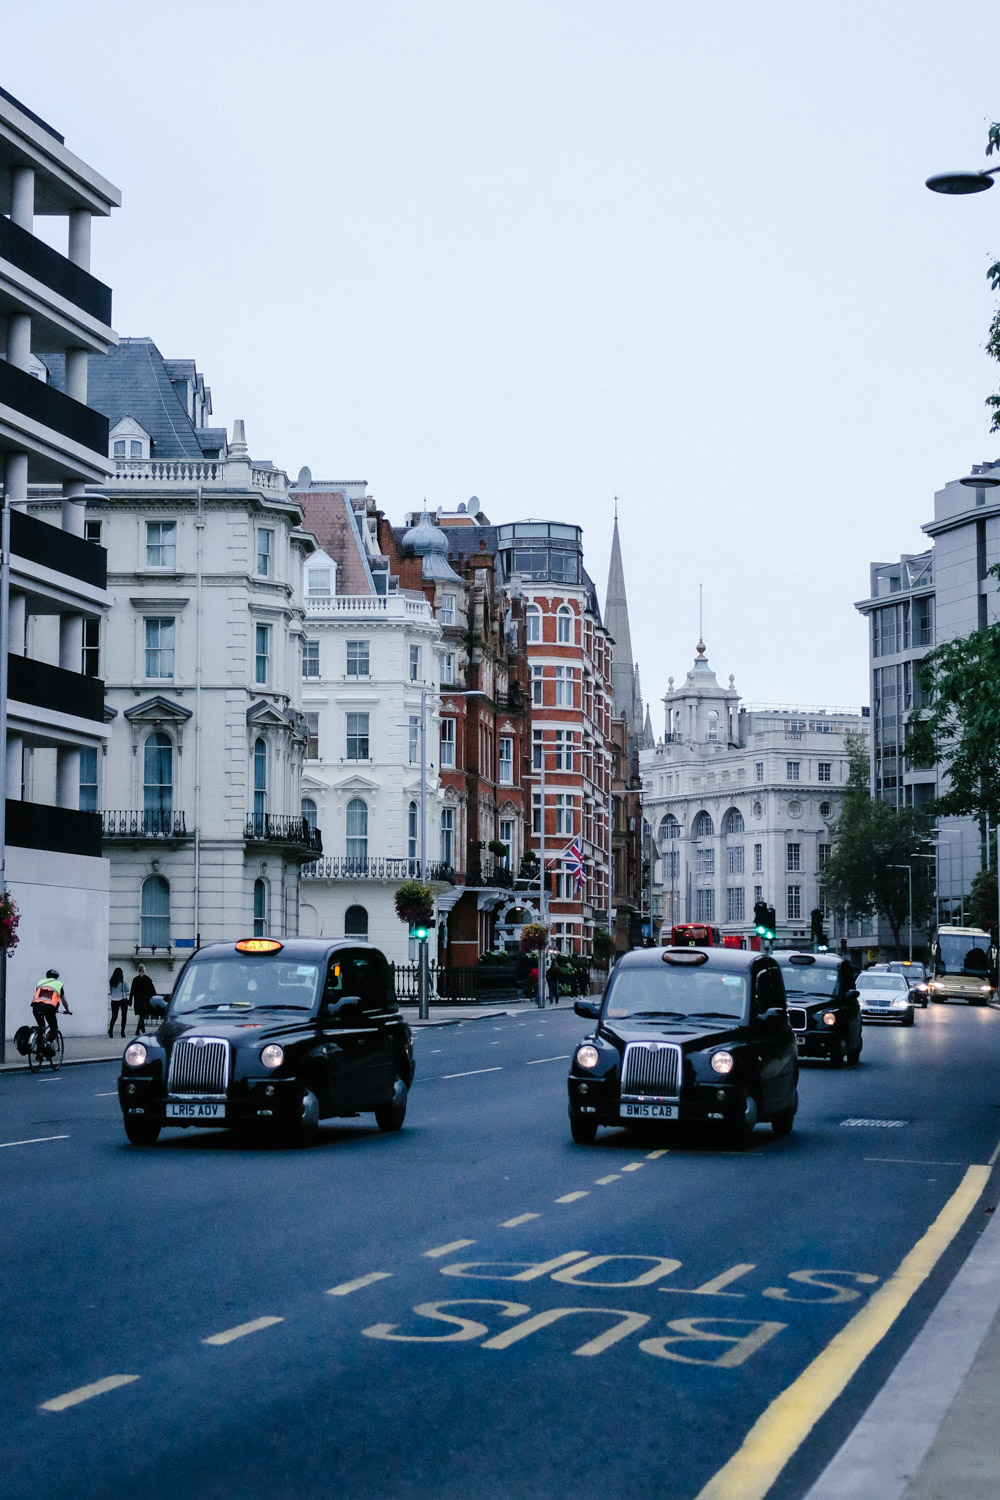 The black cabs of London